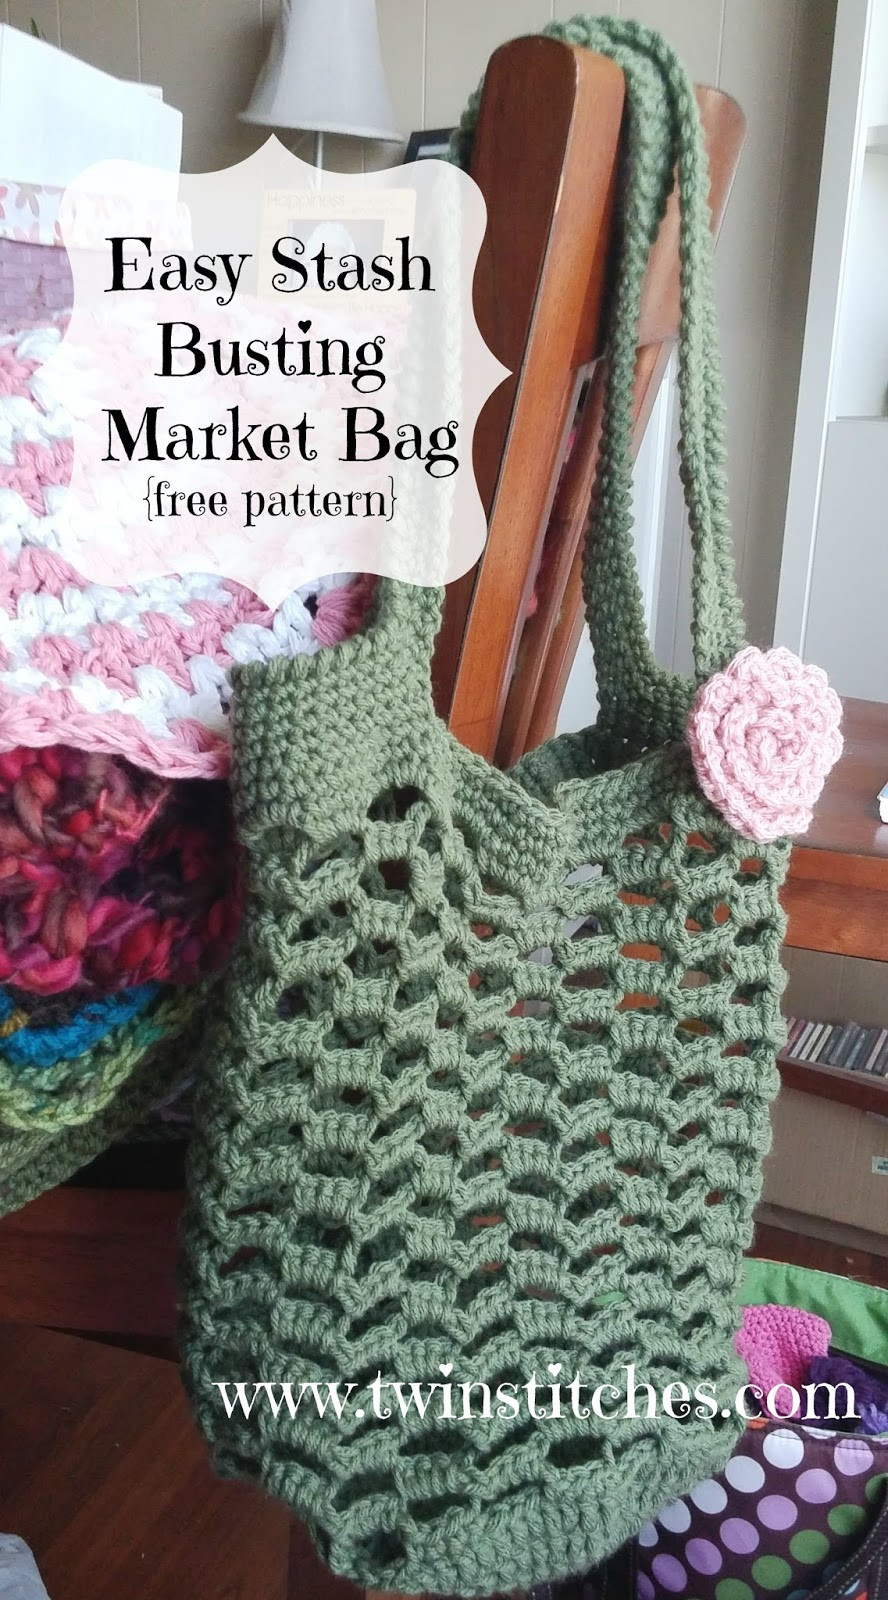 Crochet Market Bag Pattern Luxury Tw In Stitches Easy Stashbusting Market Bag Free Of Top 45 Images Crochet Market Bag Pattern